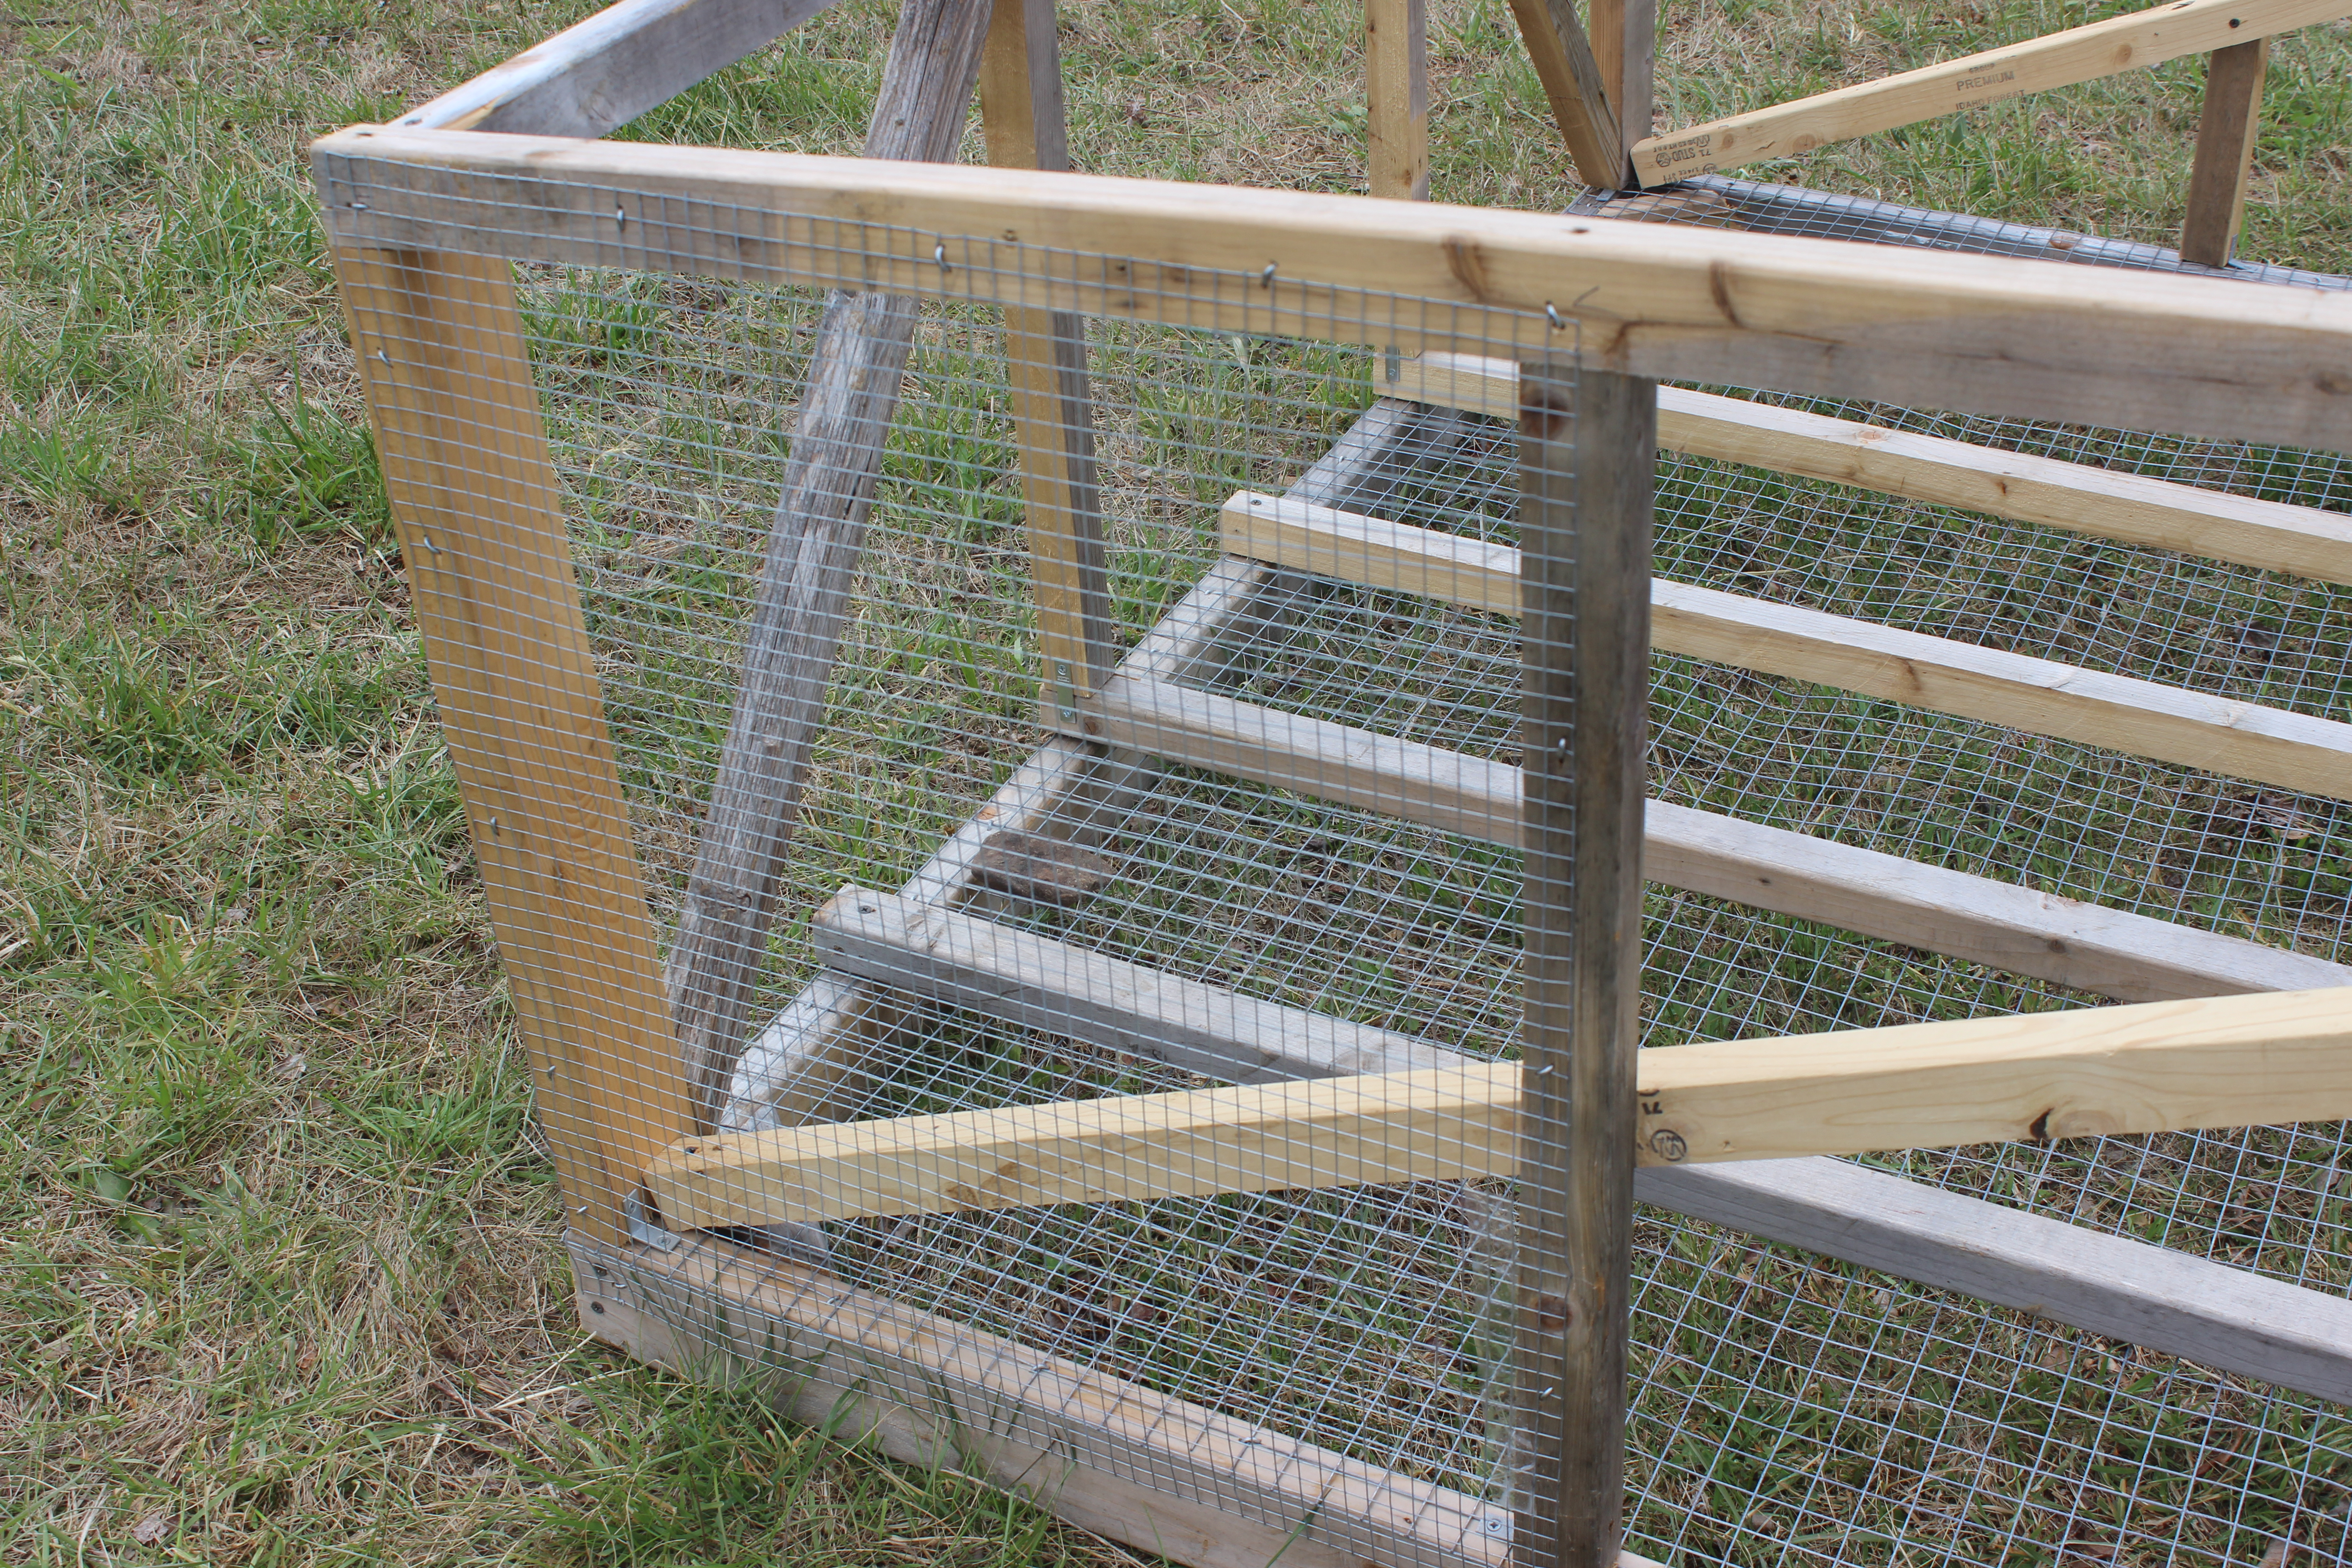 Finally, a Mobile Chicken Coop One Person Can (Easily) Move ...